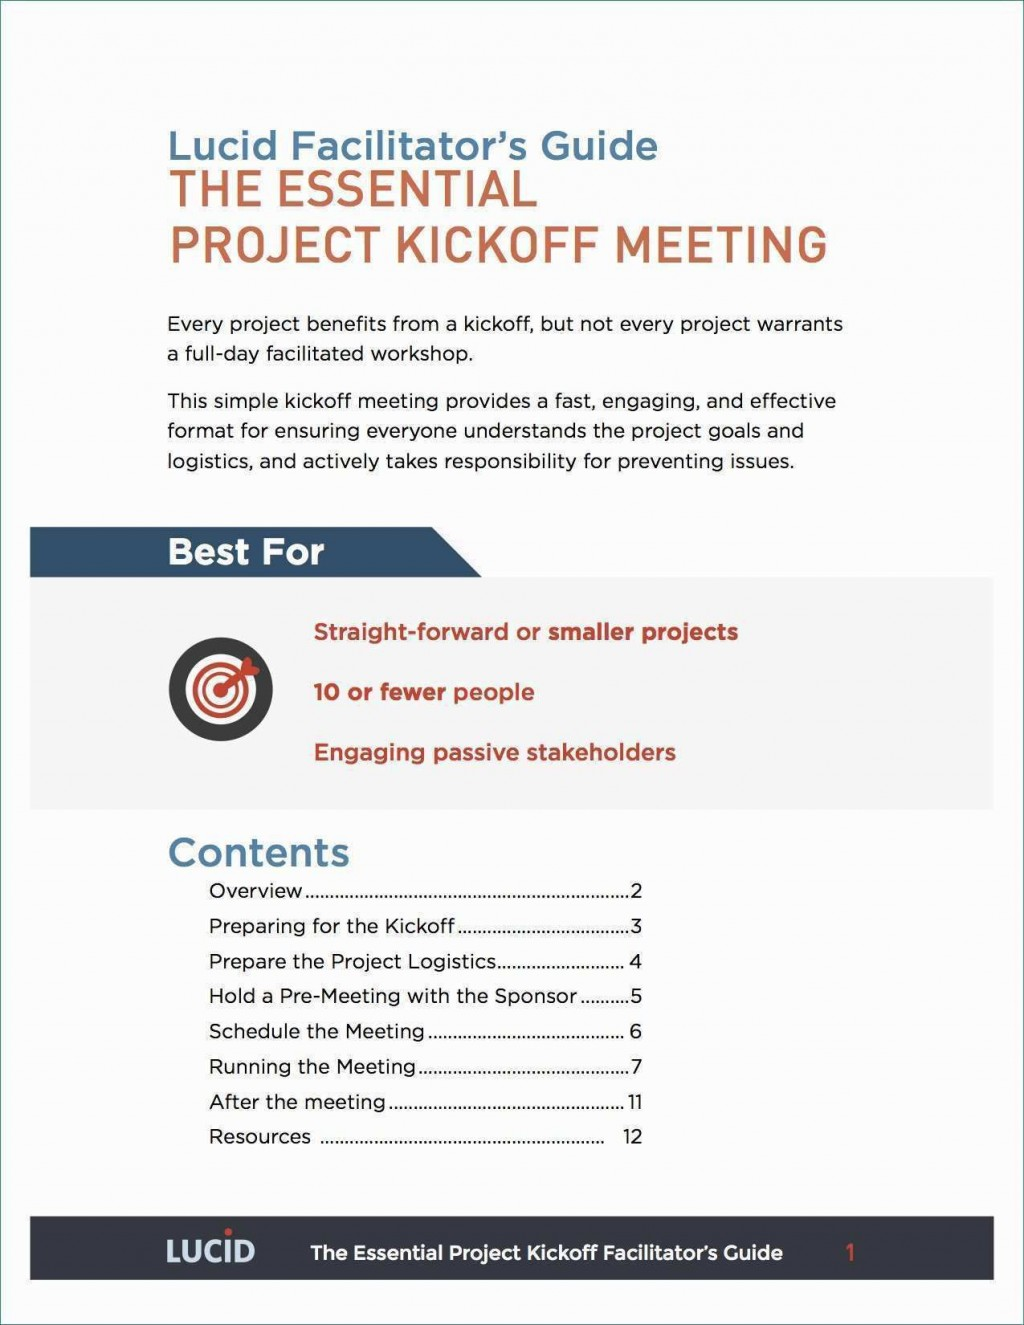 003 Astounding Construction Project Kickoff Meeting Agenda Template Image Large